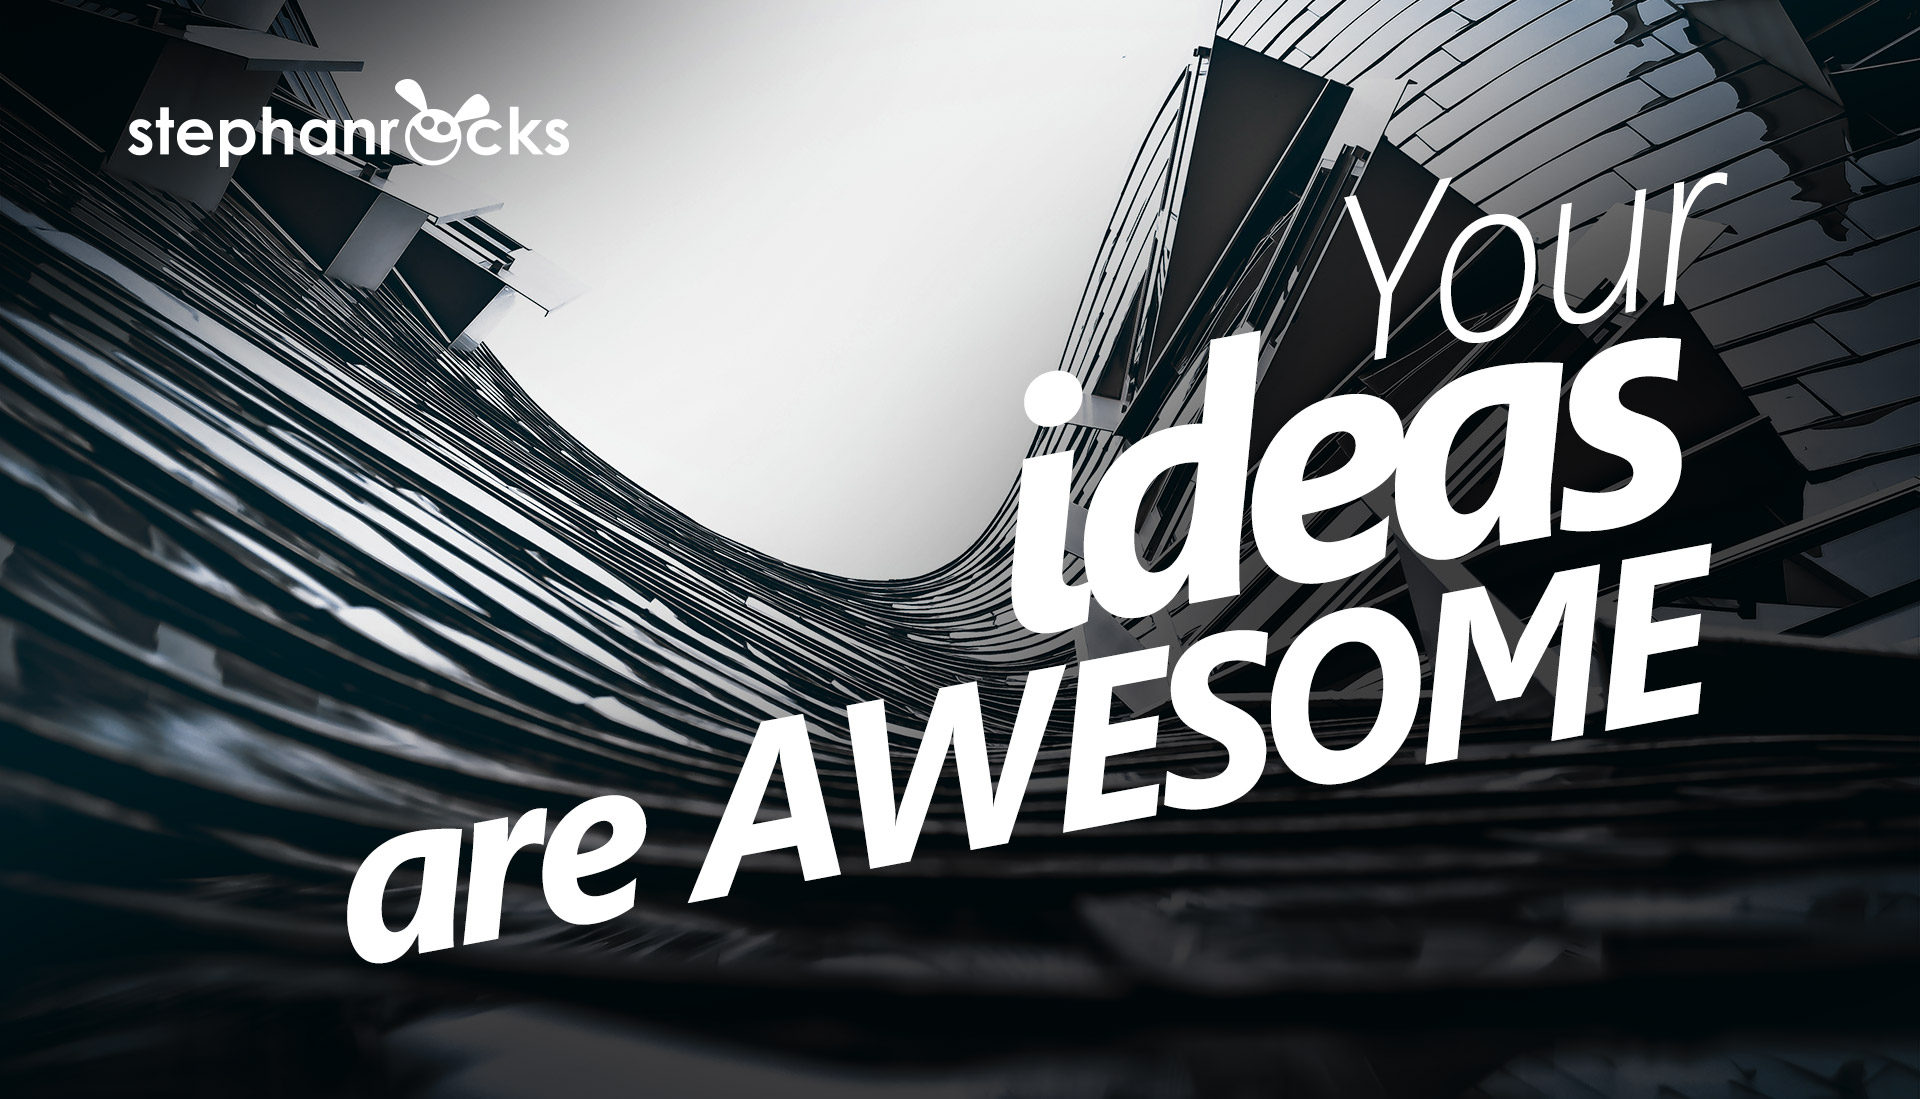 Your ideas are awesome